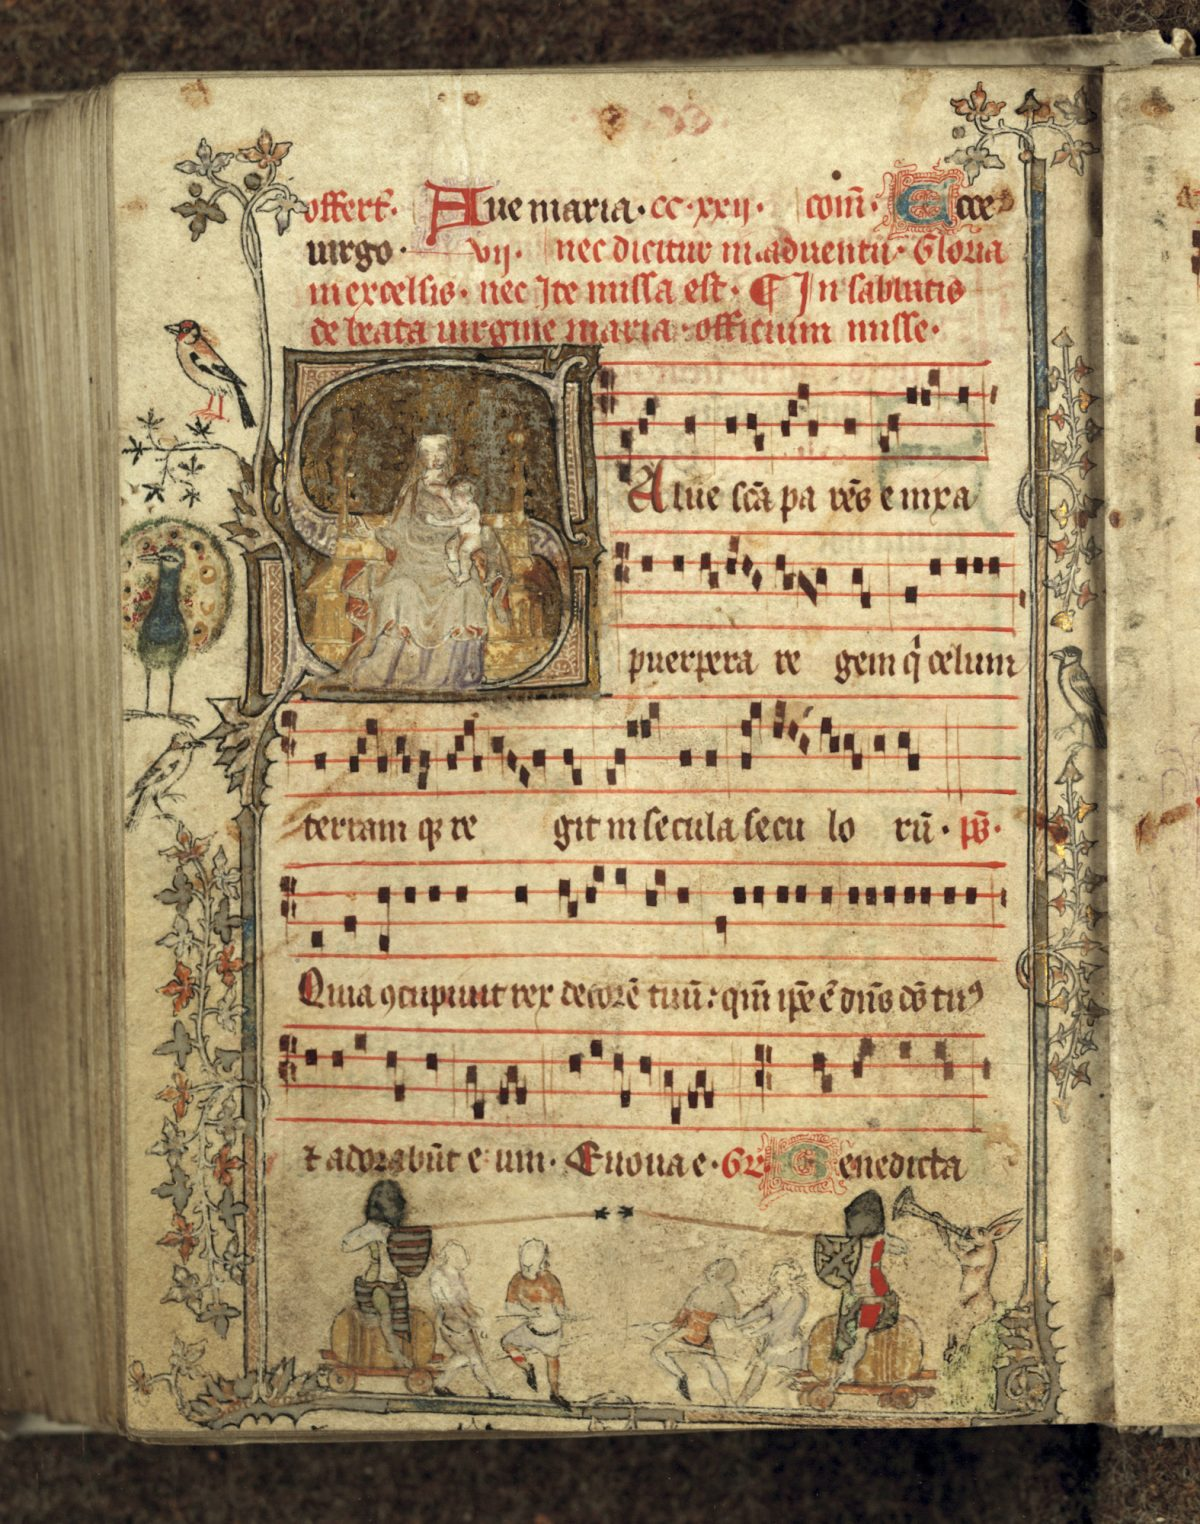 """Gradual (song book formerly at Genadedal),"" 14th century, by Unknown artist from Low Countries. Manuscript, 6 5/16 inches by 4 3/4 inches, Bibliothèque municipale, Douai. (Courtesy of The Frick Collection)"